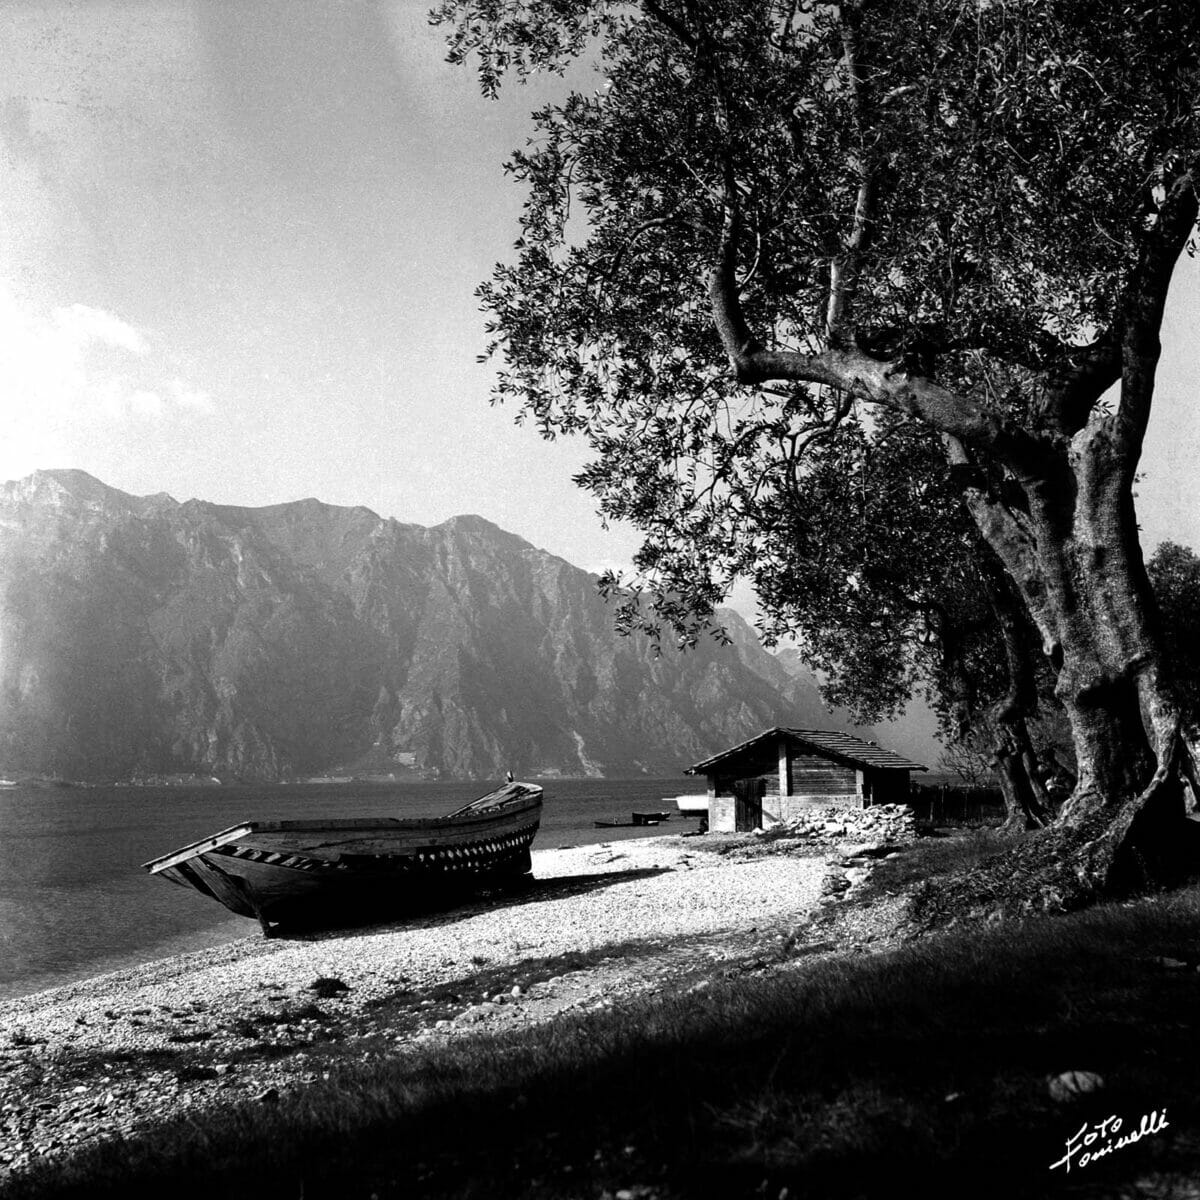 boat on the beach and olive tree